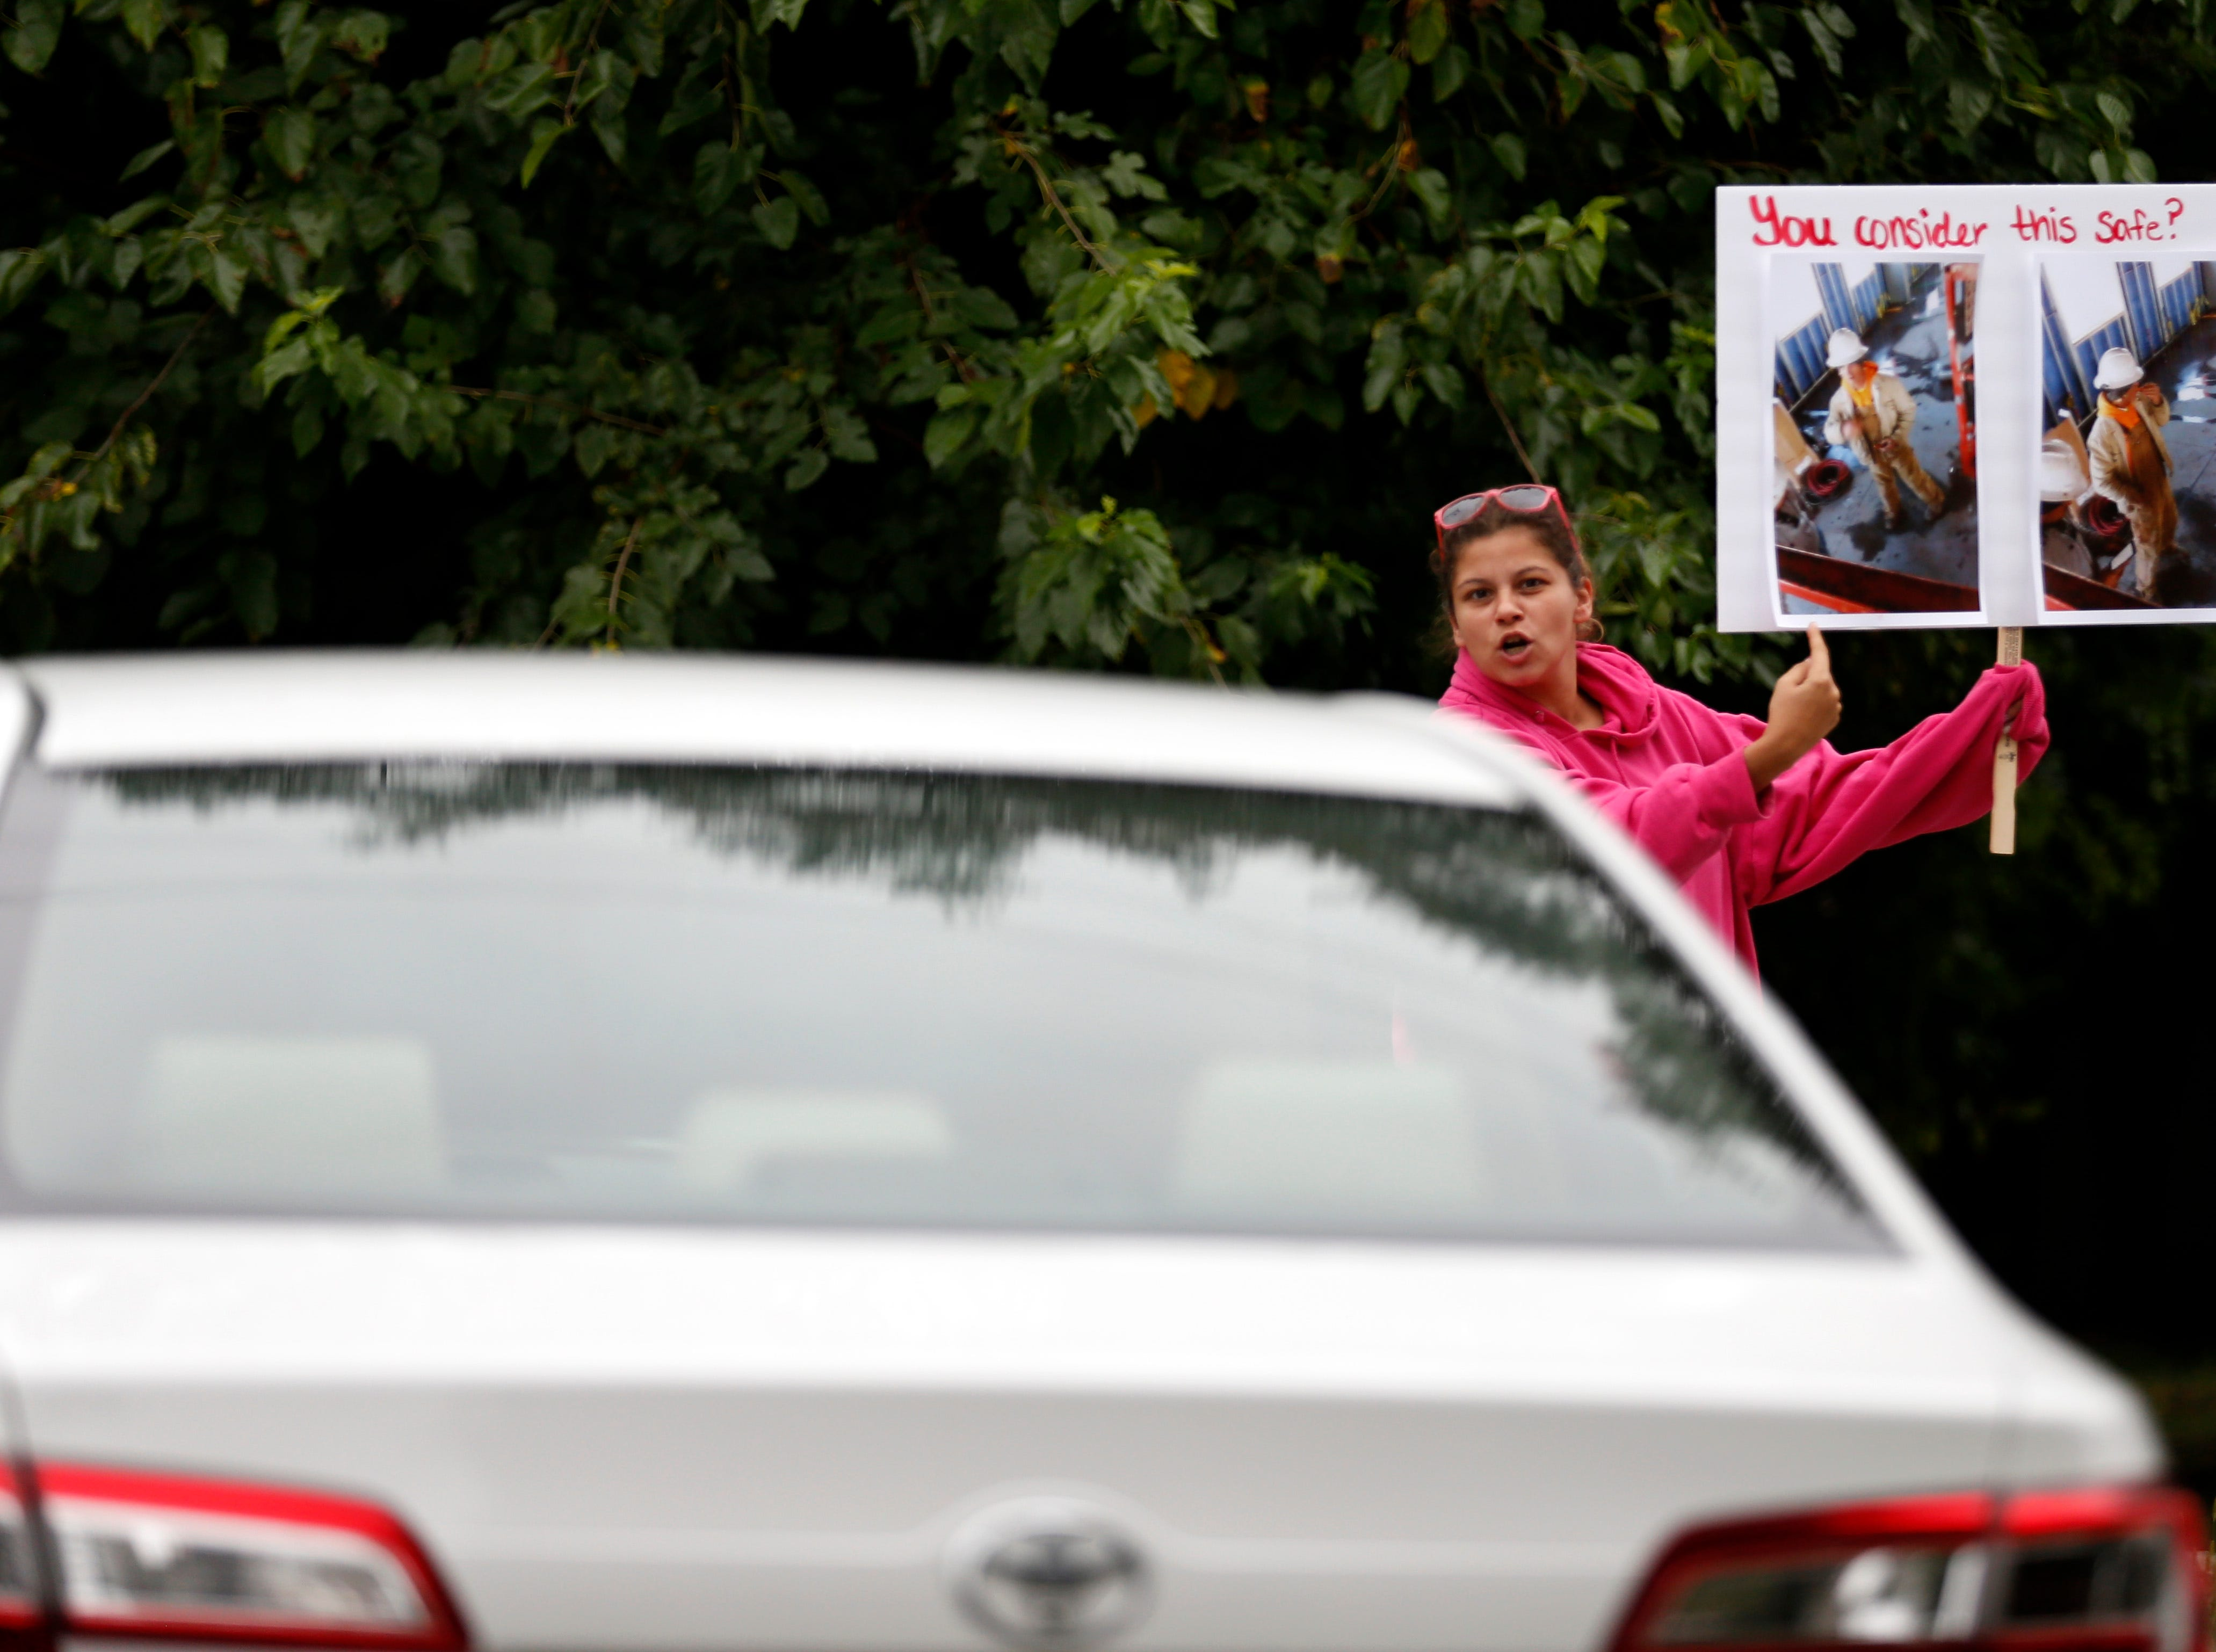 A counter-protestor points at her sign as protestors leave in cars along West Farm Road 146 outside DelCo Construction on Tuesday, Aug. 14, 2018. Protestors claimed that DelCo and its owner, Jeff Delmont, subject workers to unsafe conditions, low wages, and inadequate training while counter-protestors pushed back against the allegations.